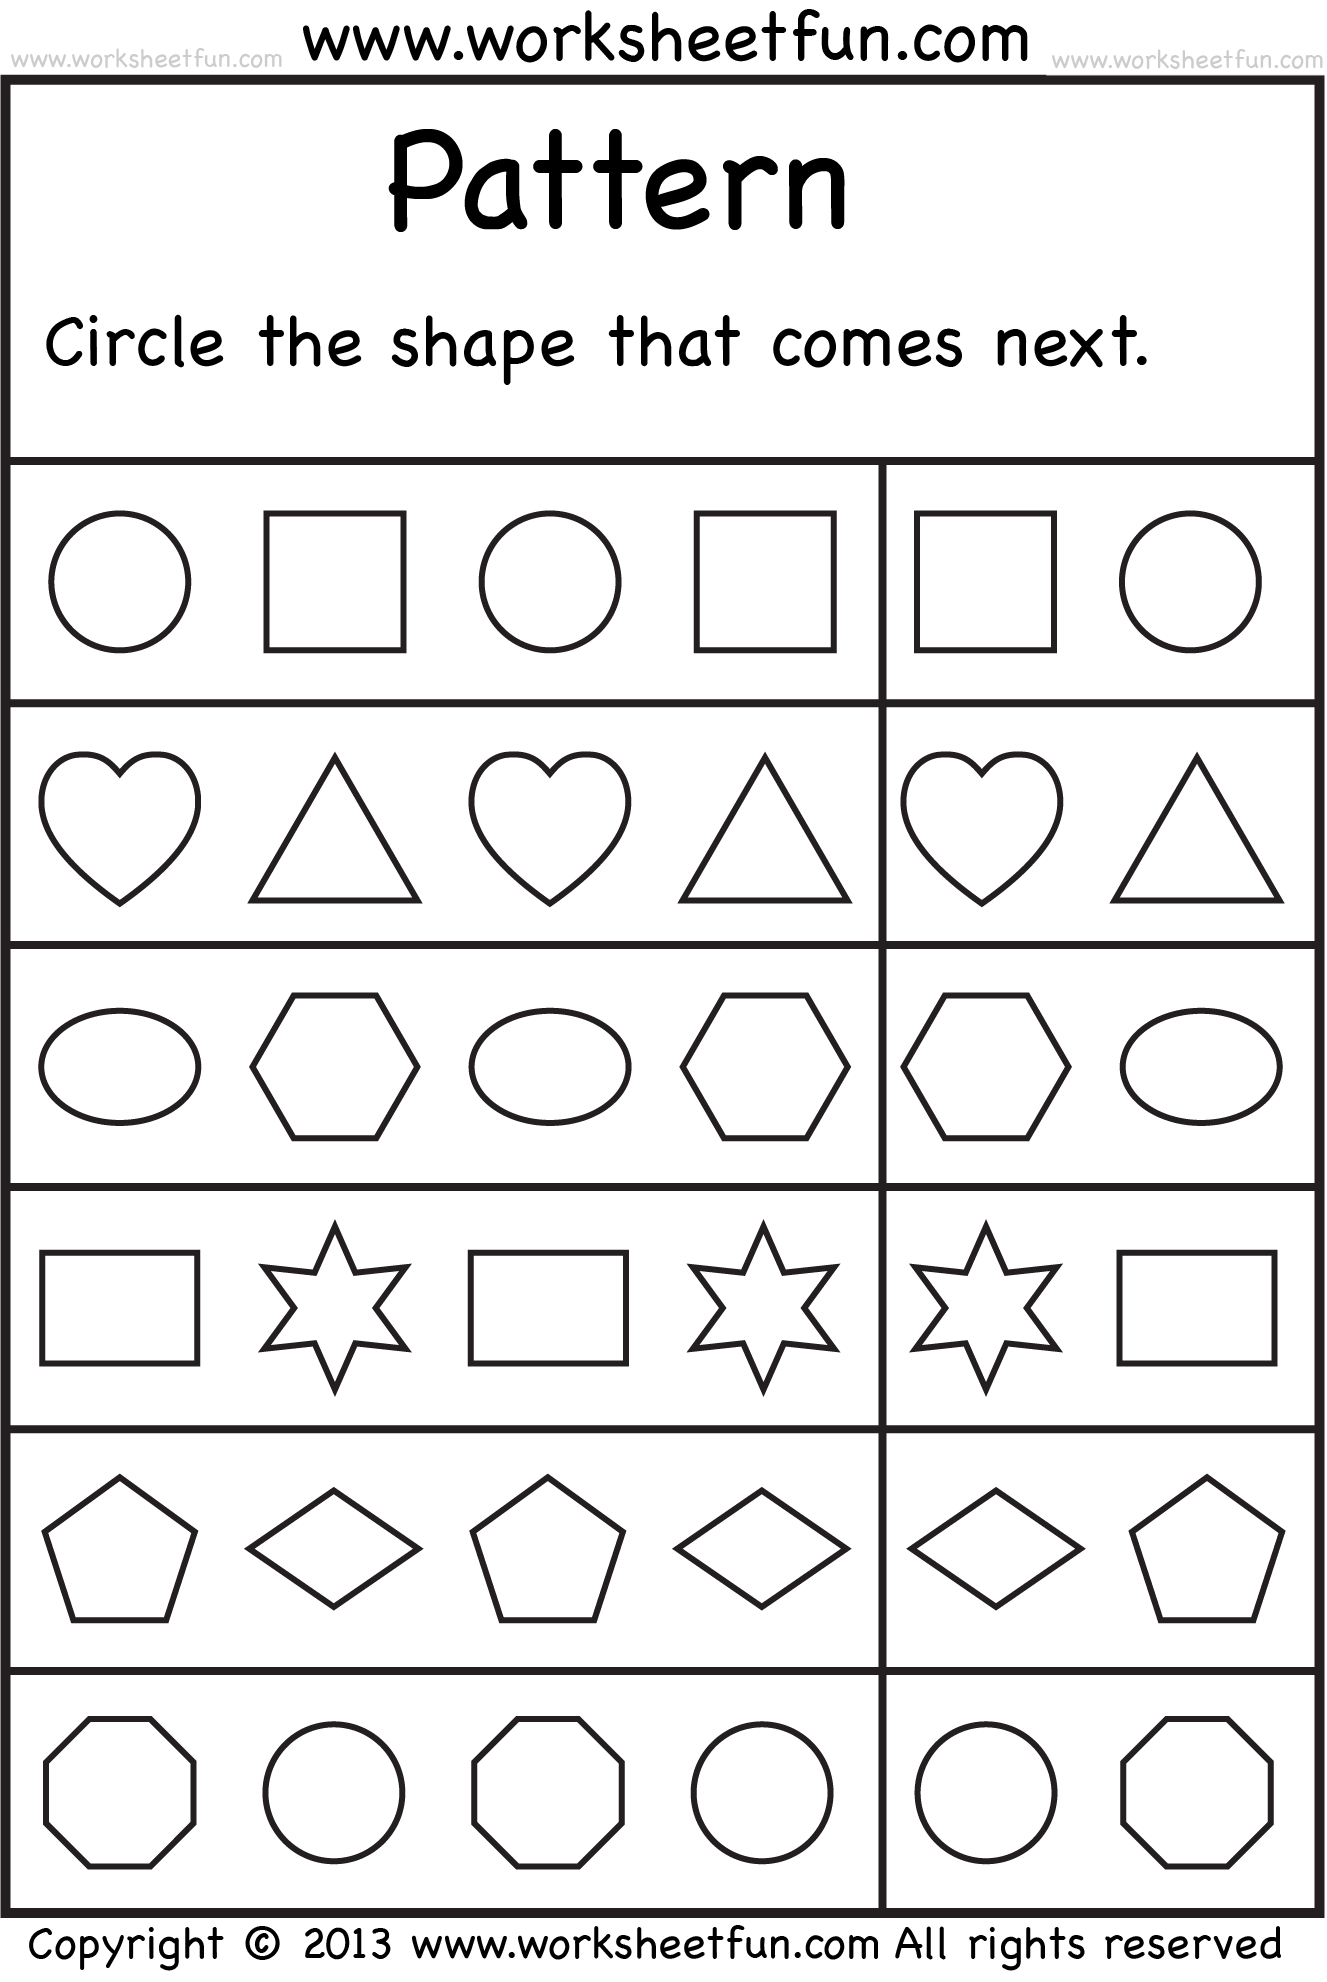 Proatmealus  Ravishing  Images About School Worksheets On Pinterest  Number Words  With Remarkable  Images About School Worksheets On Pinterest  Number Words Alphabet Worksheets And Free Printable Kindergarten Worksheets With Cute Time Worksheets For Kindergarten Also Esl Reading Comprehension Worksheets For Adults In Addition Angle Bisector Theorem Worksheet And Social Studies Worksheets For Kindergarten As Well As Free Printable Th Grade Worksheets Additionally Detailed Budget Worksheet From Pinterestcom With Proatmealus  Remarkable  Images About School Worksheets On Pinterest  Number Words  With Cute  Images About School Worksheets On Pinterest  Number Words Alphabet Worksheets And Free Printable Kindergarten Worksheets And Ravishing Time Worksheets For Kindergarten Also Esl Reading Comprehension Worksheets For Adults In Addition Angle Bisector Theorem Worksheet From Pinterestcom